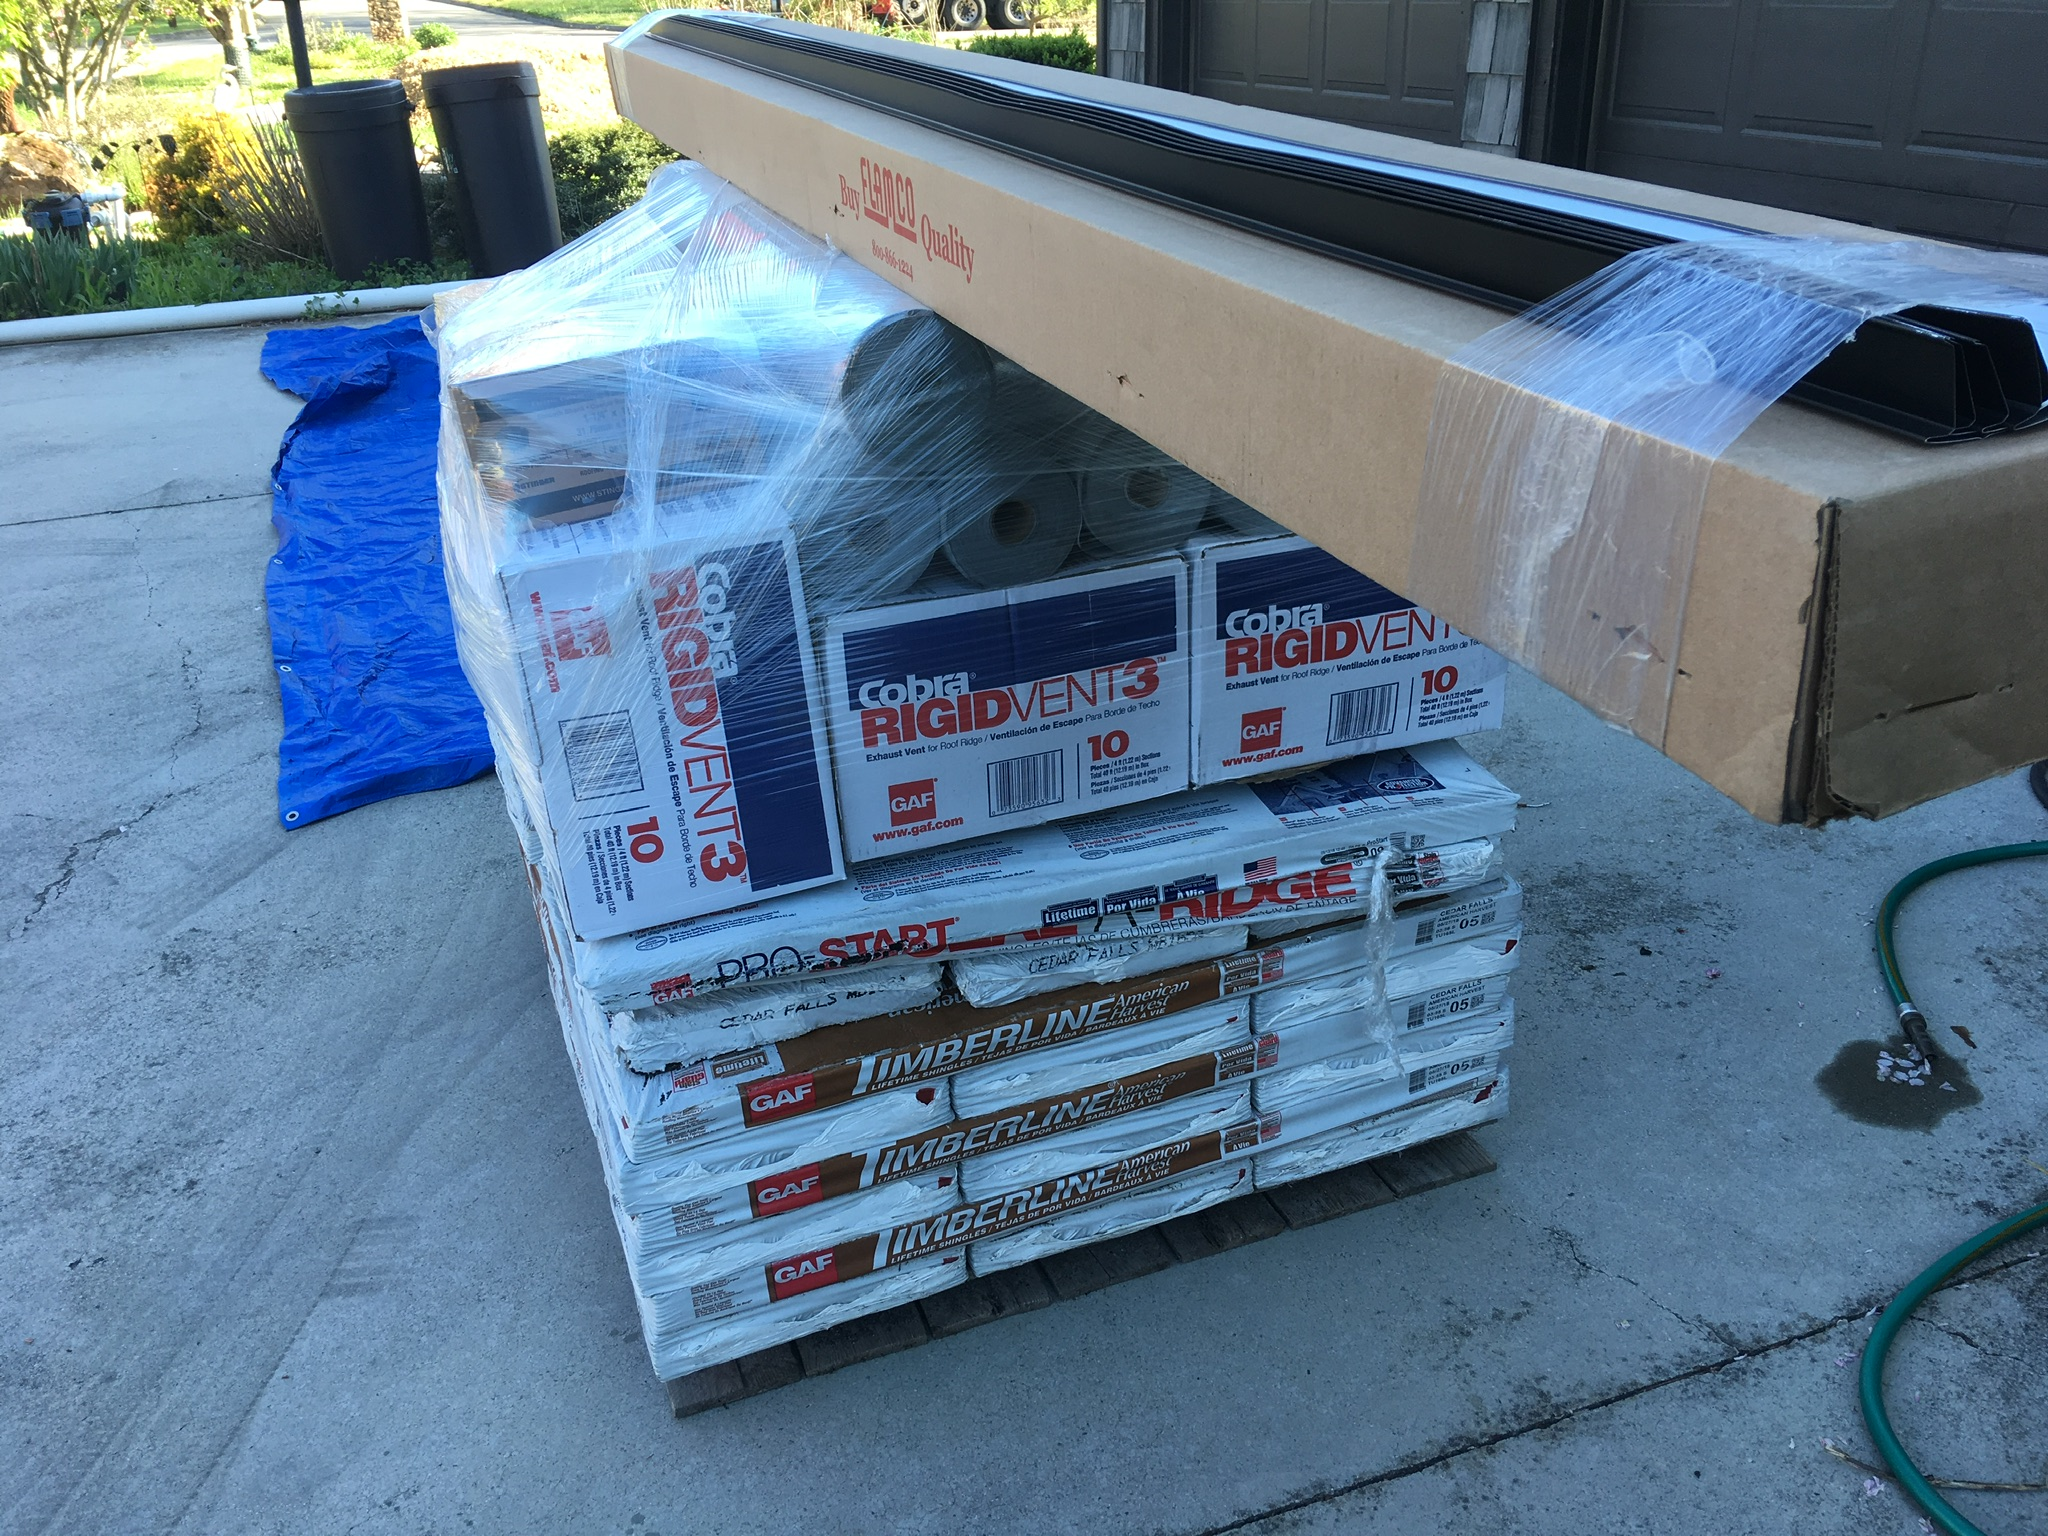 This is a view of all roofing materials delivered to the home from the distributor.